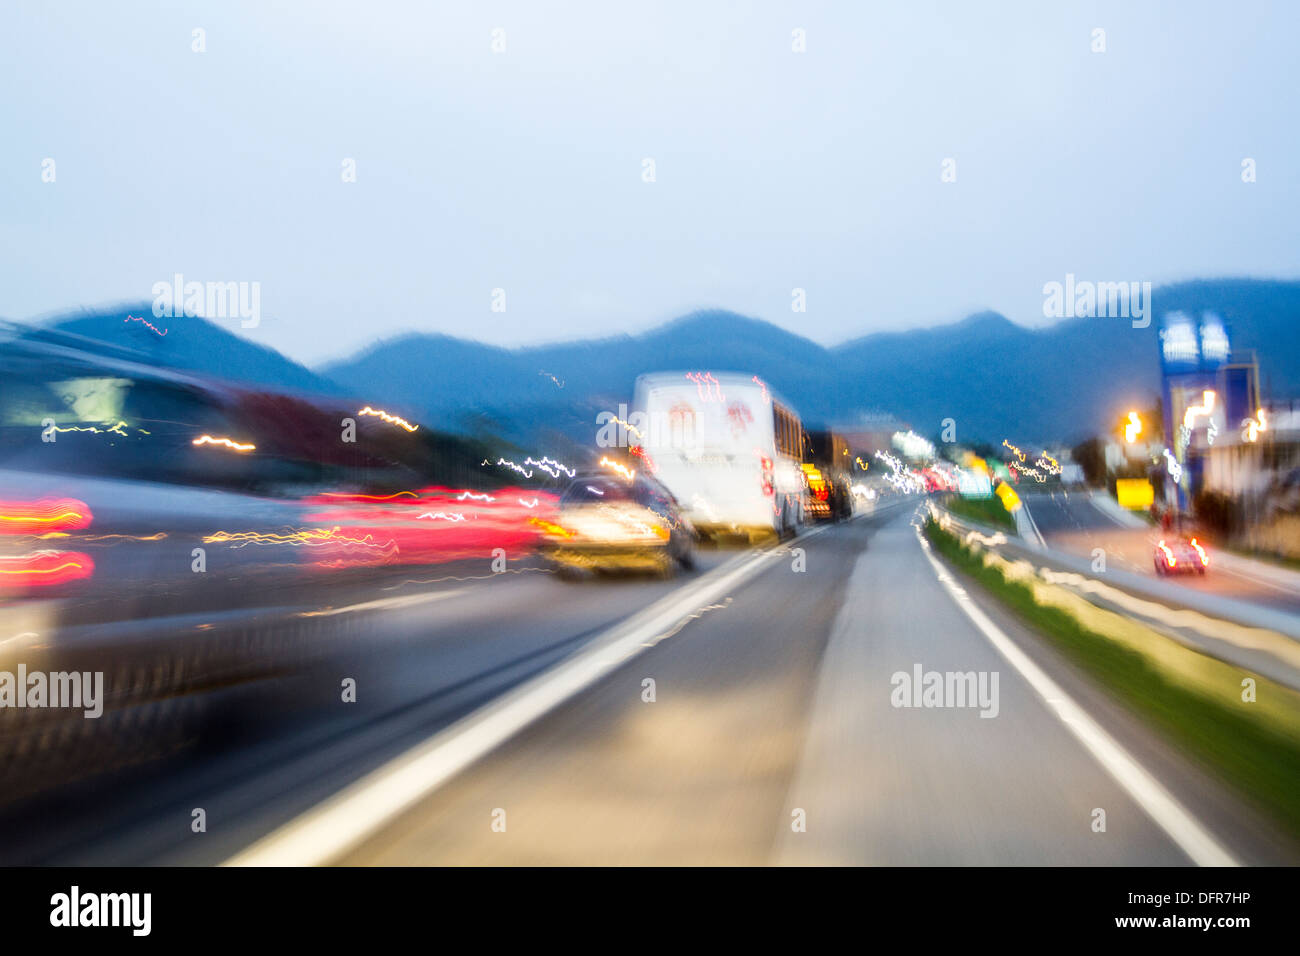 Blurred motion on a road at evening. - Stock Image